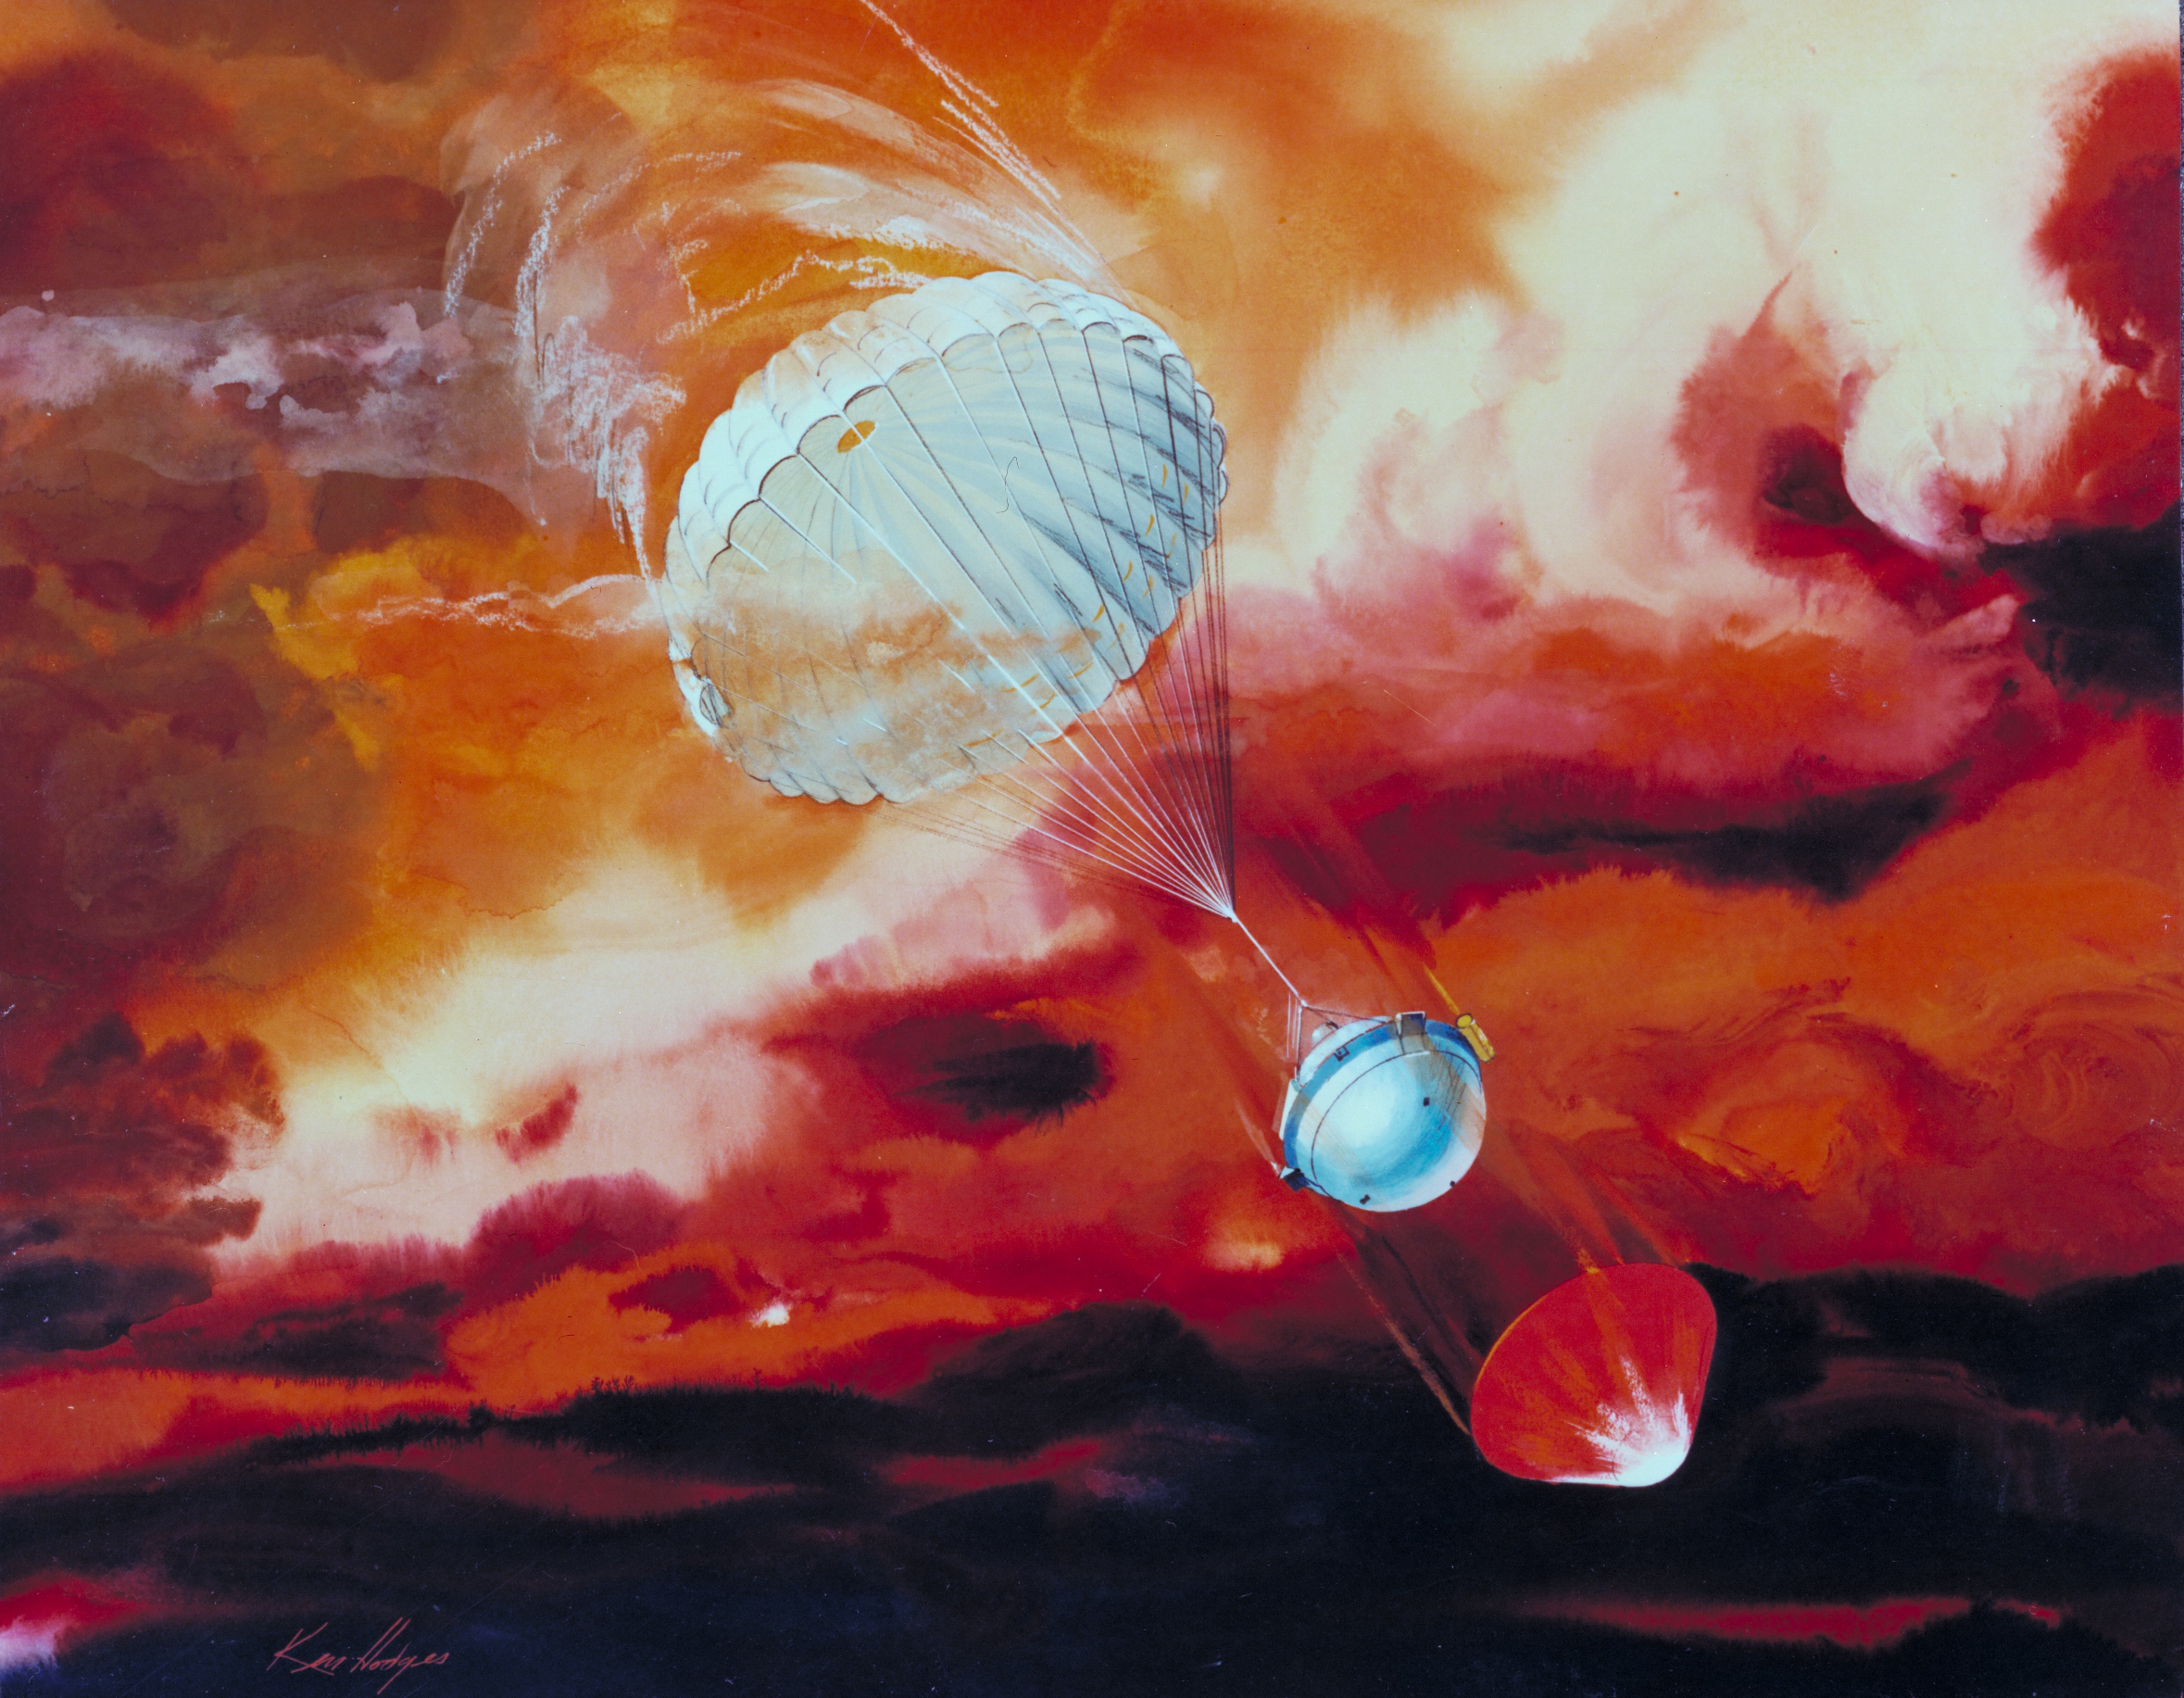 """Celebrating the 20th anniversary of the successful deployment of a probe into Jupiter's atmosphere, this episode is a series of interviews with the engineers who worked on this challenging, historic mission. Image: """"Galileo Probe - AC81-0174"""" by NASA Artwork by Ken Hodges."""